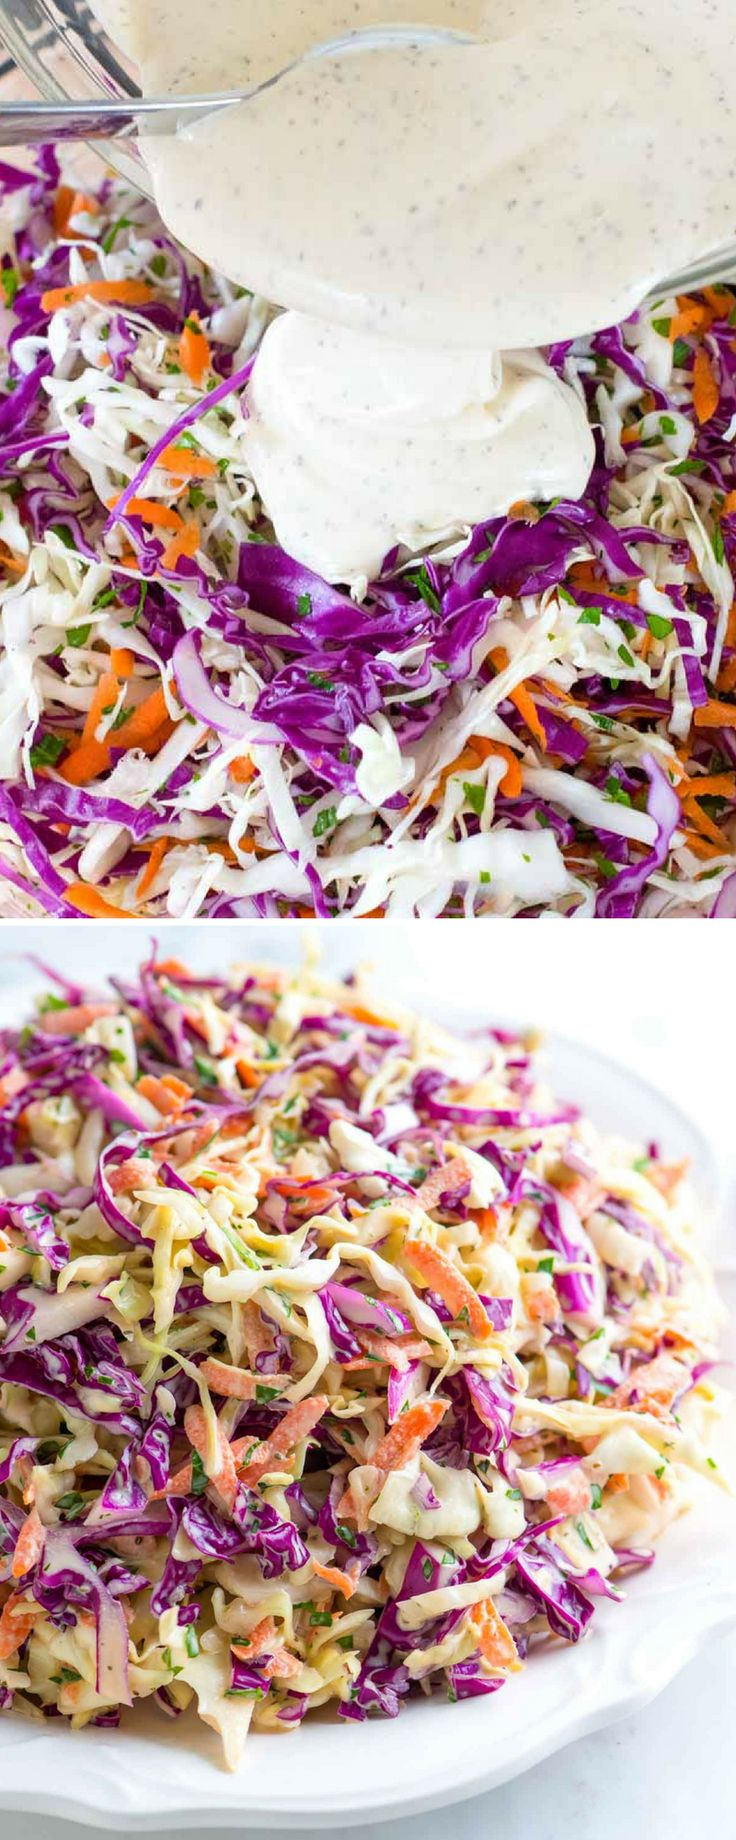 Seriously Good Homemade Coleslaw Recipe - I love this easy coleslaw recipe! The dressing is made without any added sugar and is practically addictive. This is great for BBQs, topping pulled pork sandwiches and more! #coleslaw